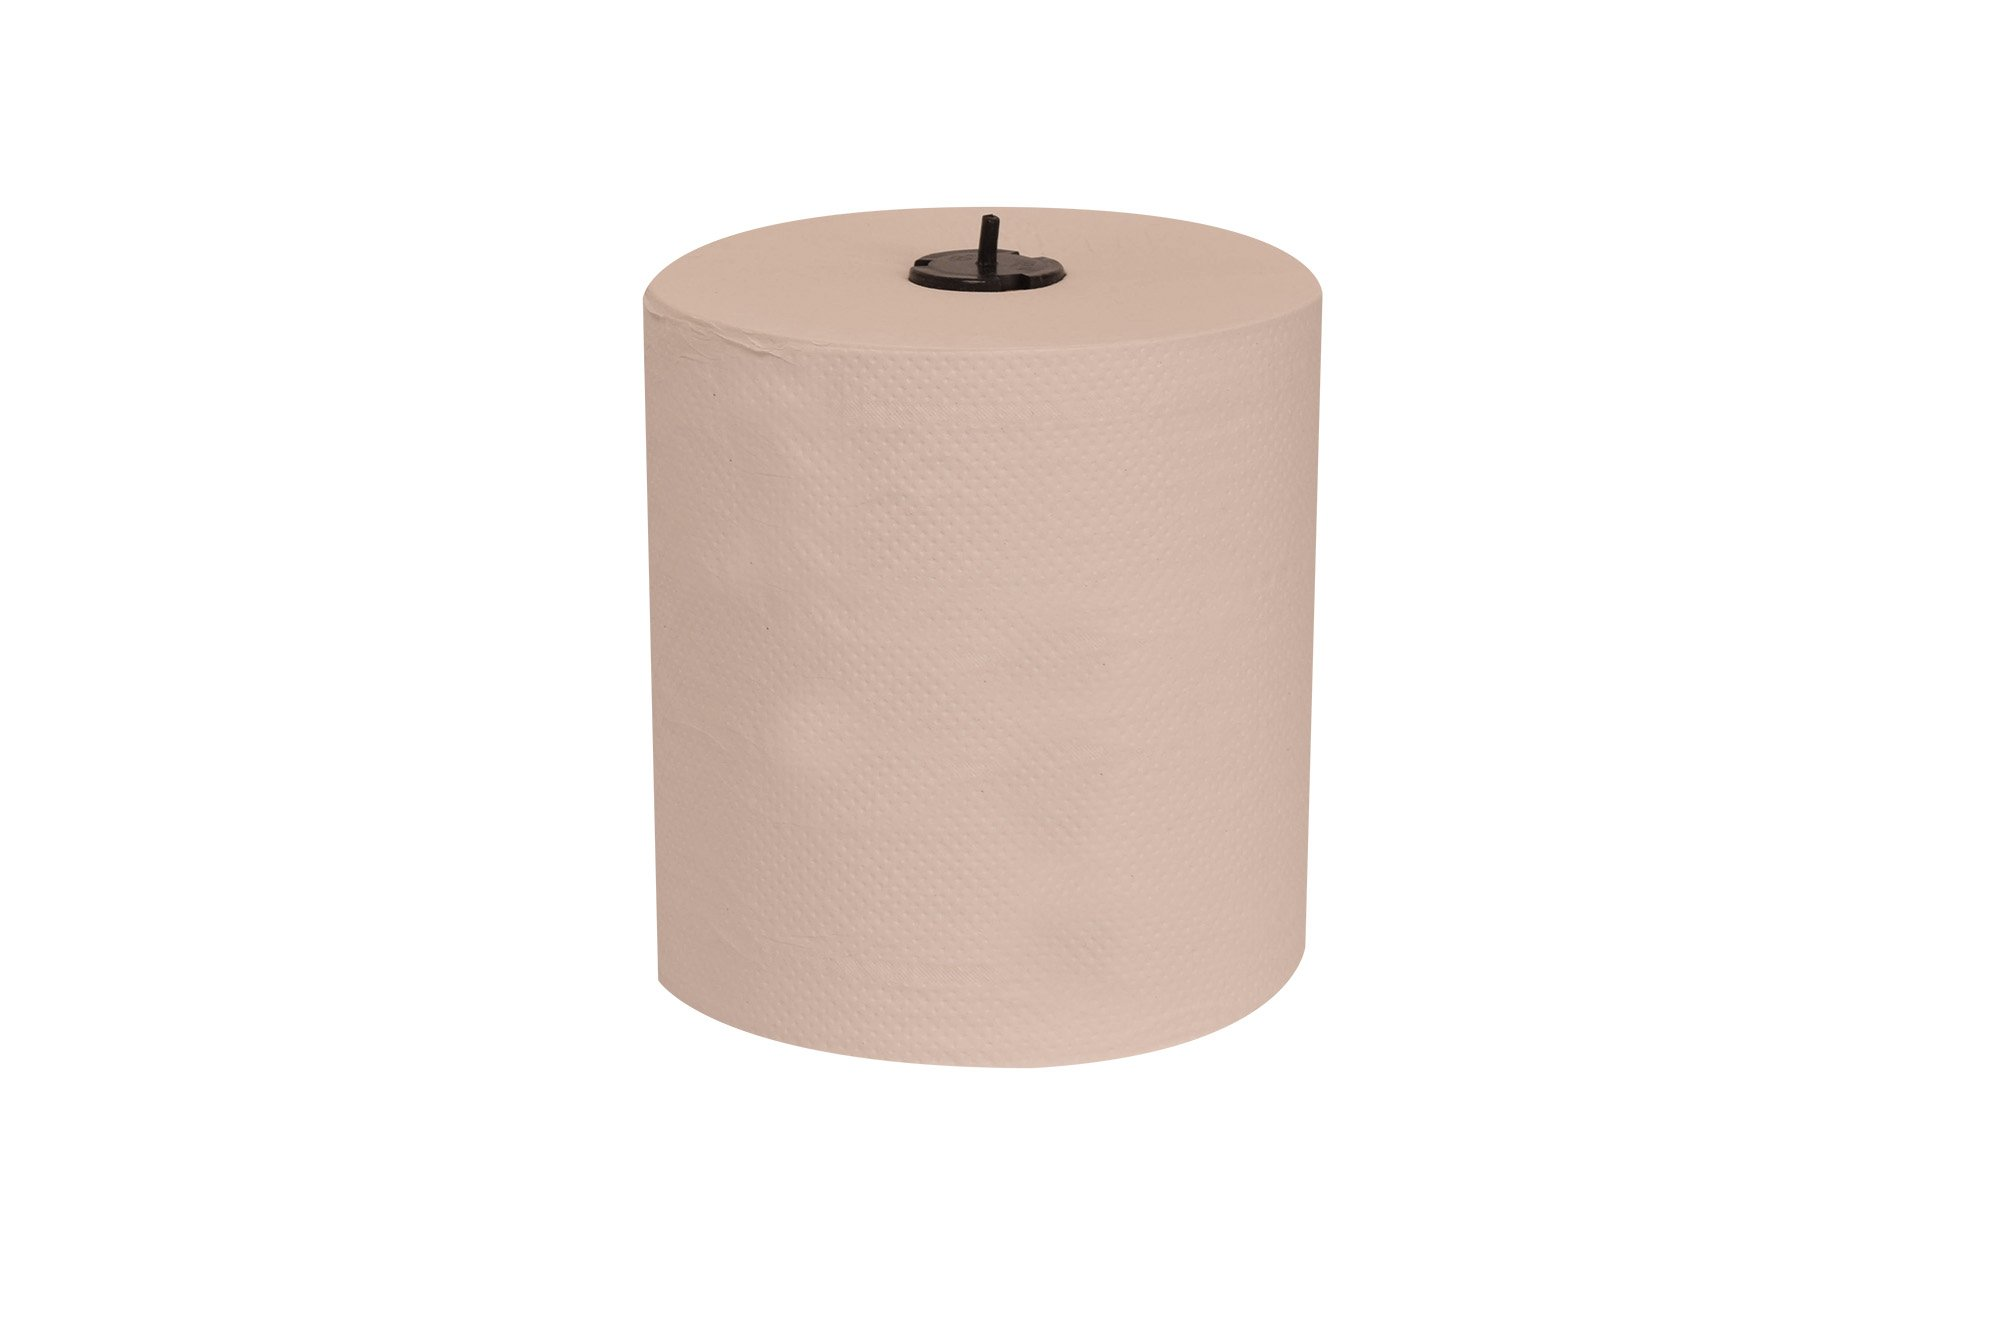 Tork 290092A Advanced Matic Paper Hand Towel Roll, 2-Ply, 7.7'' Width x 525' Length, White, (Case of 6 Rolls, 525 Feet per Roll, 3,150 Feet) by Tork (Image #5)